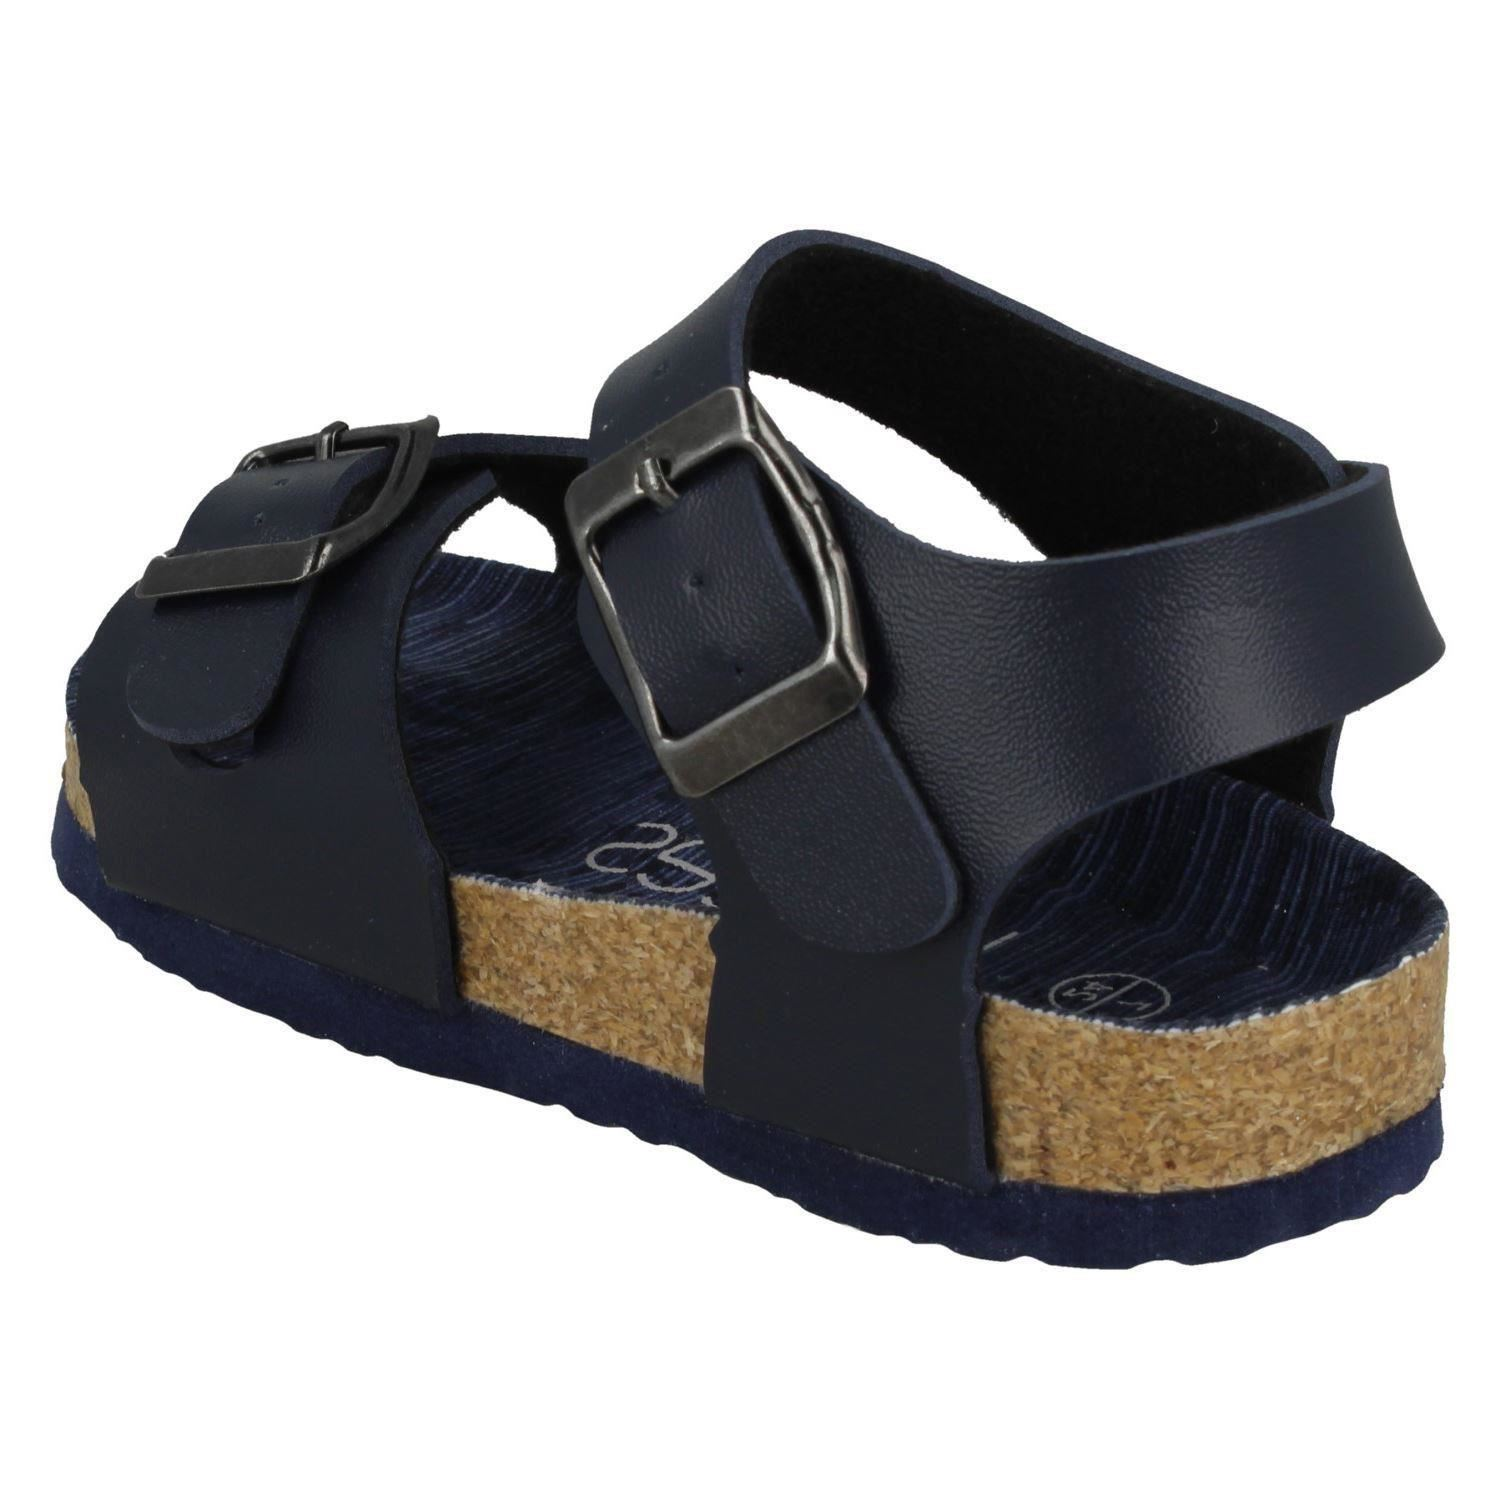 Boys JCDees Buckle Ankle Strap Sandals